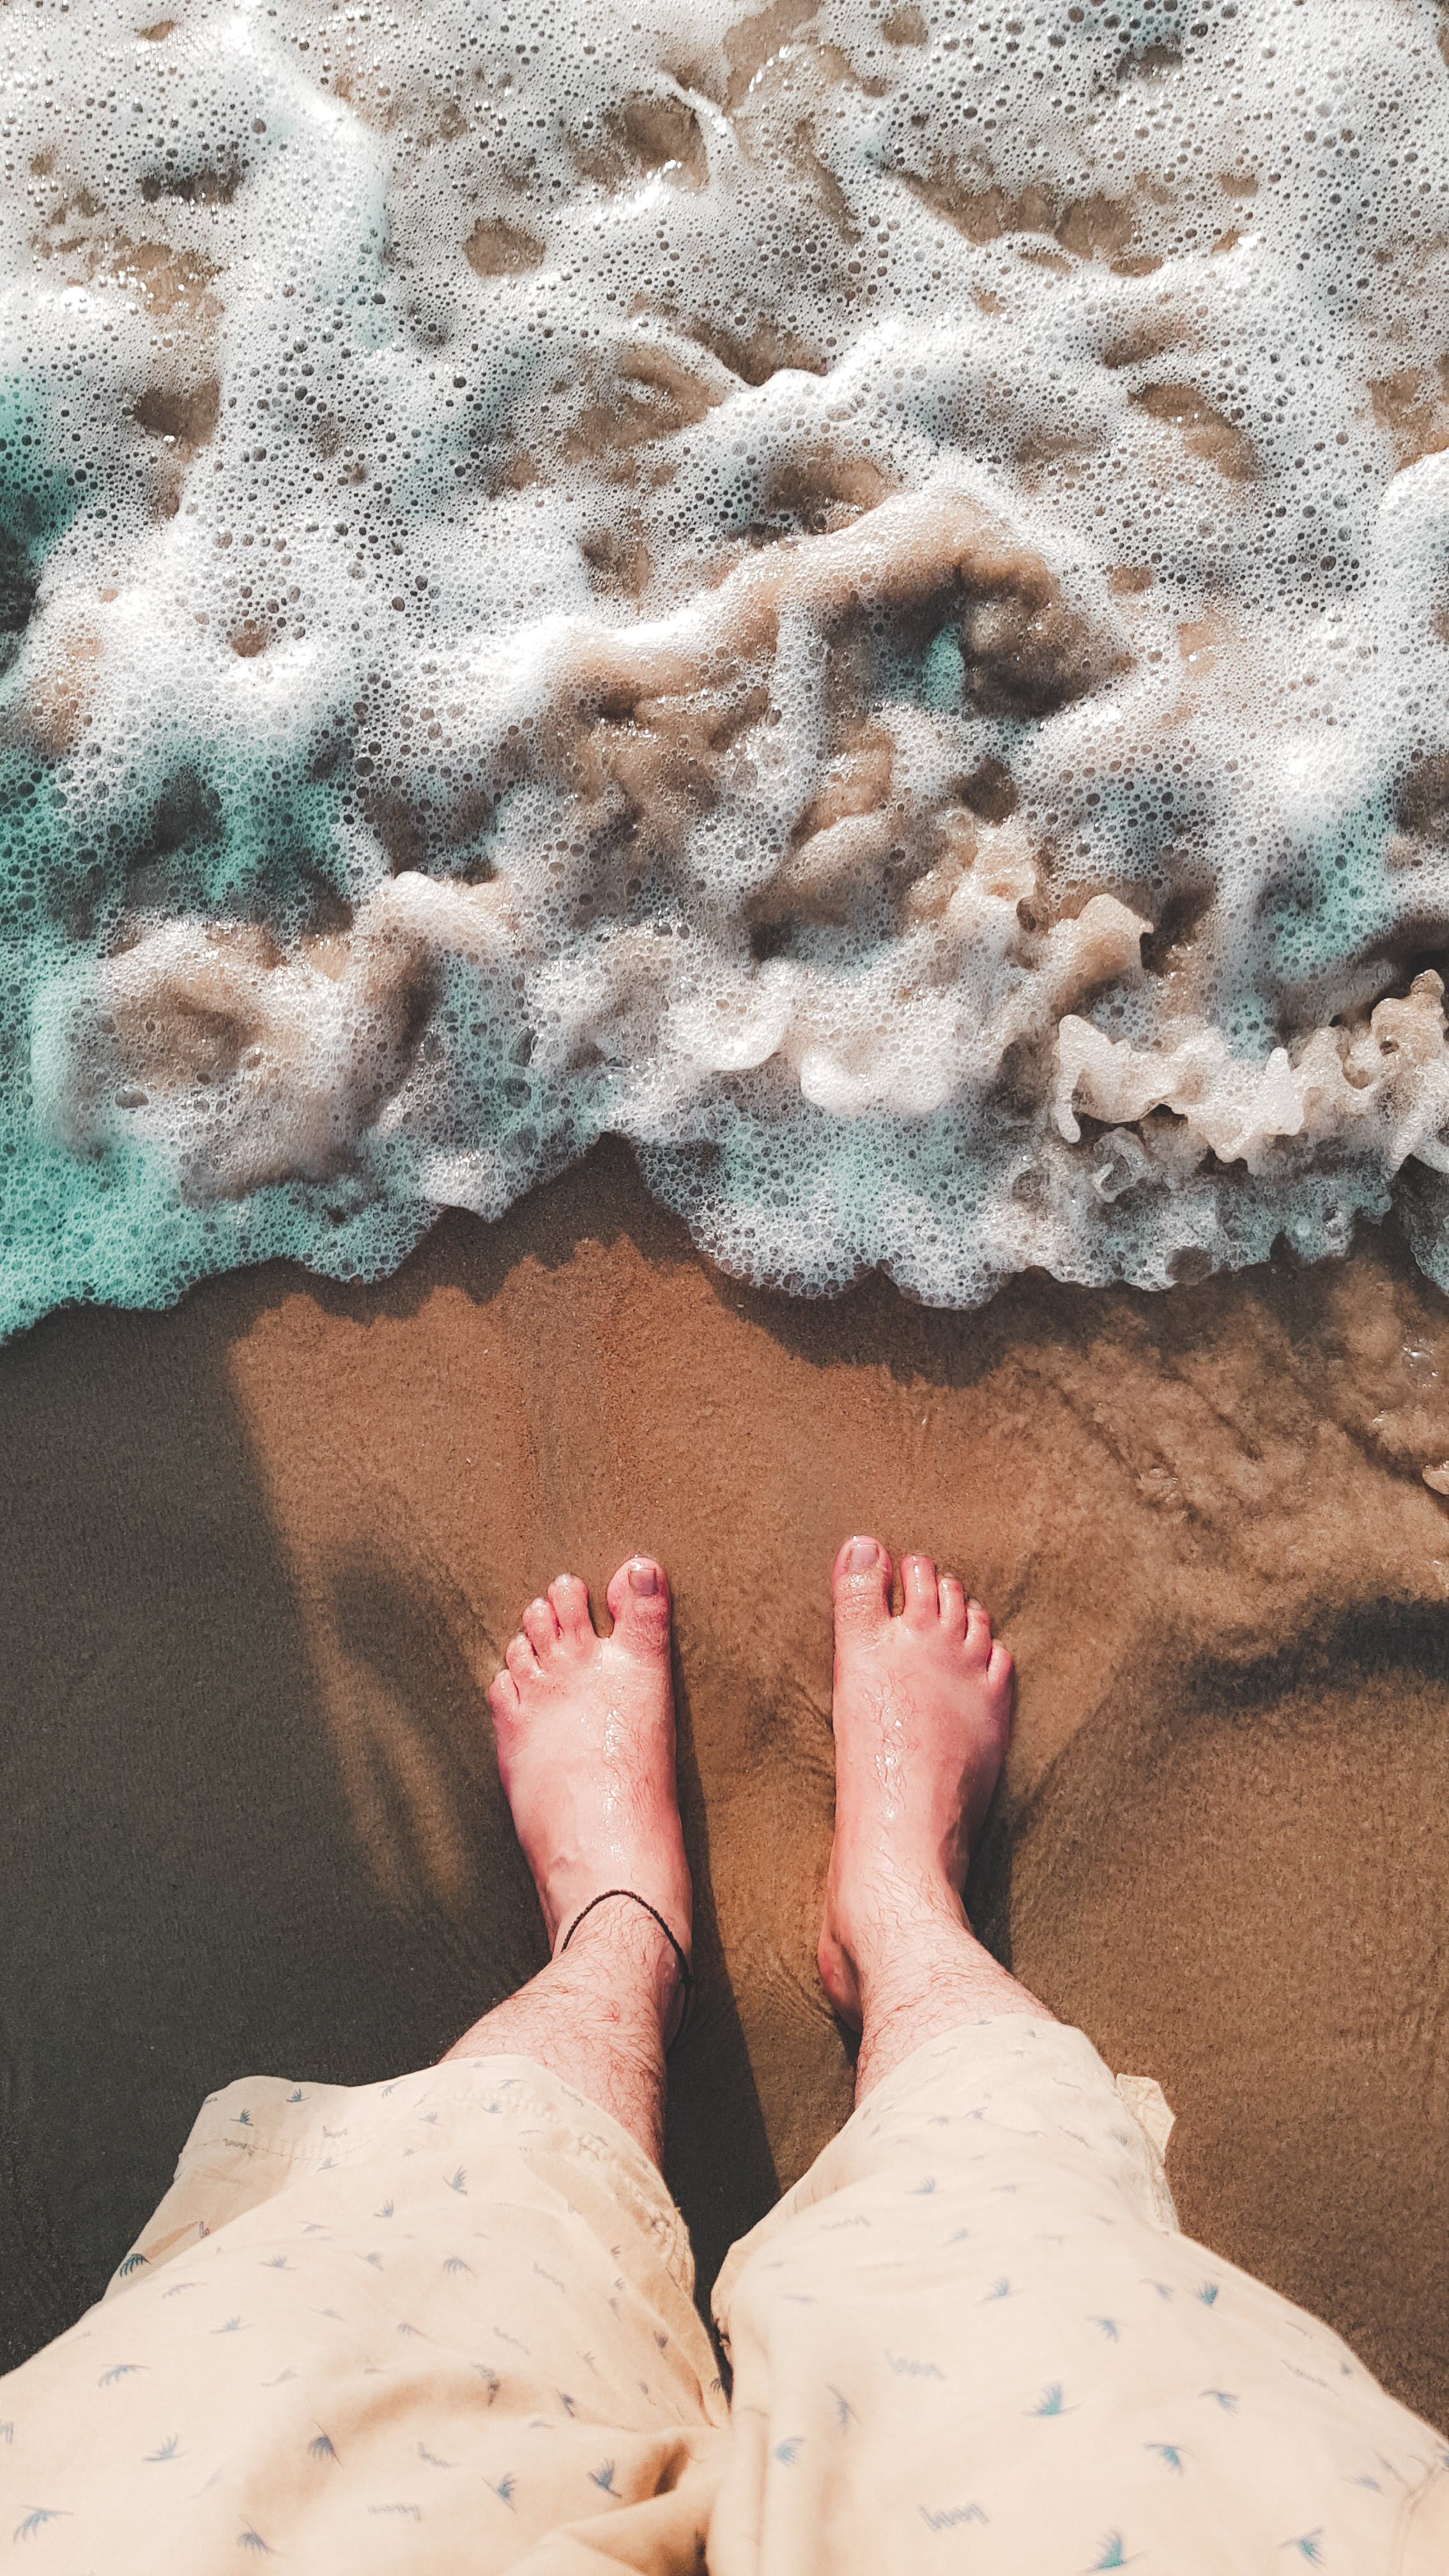 Free stock photo of sea, beach, holiday, relaxation